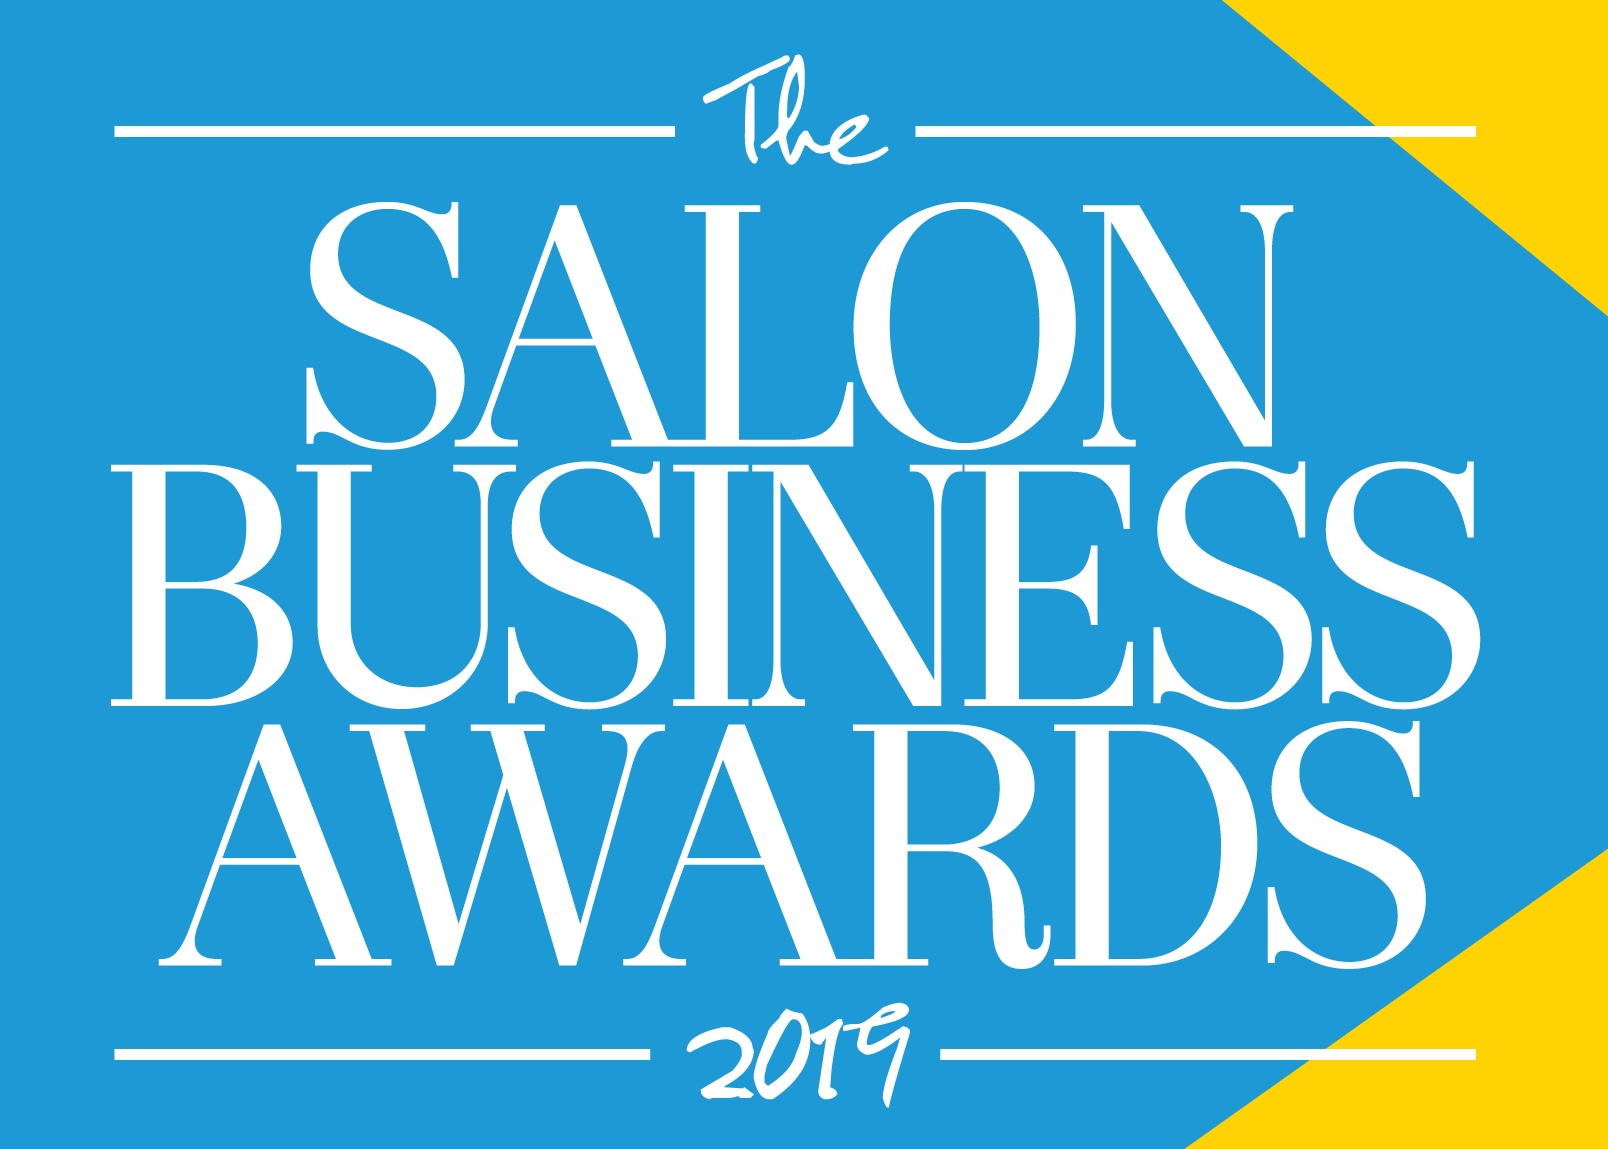 We Are Salon Business Awards Finalists 2019!